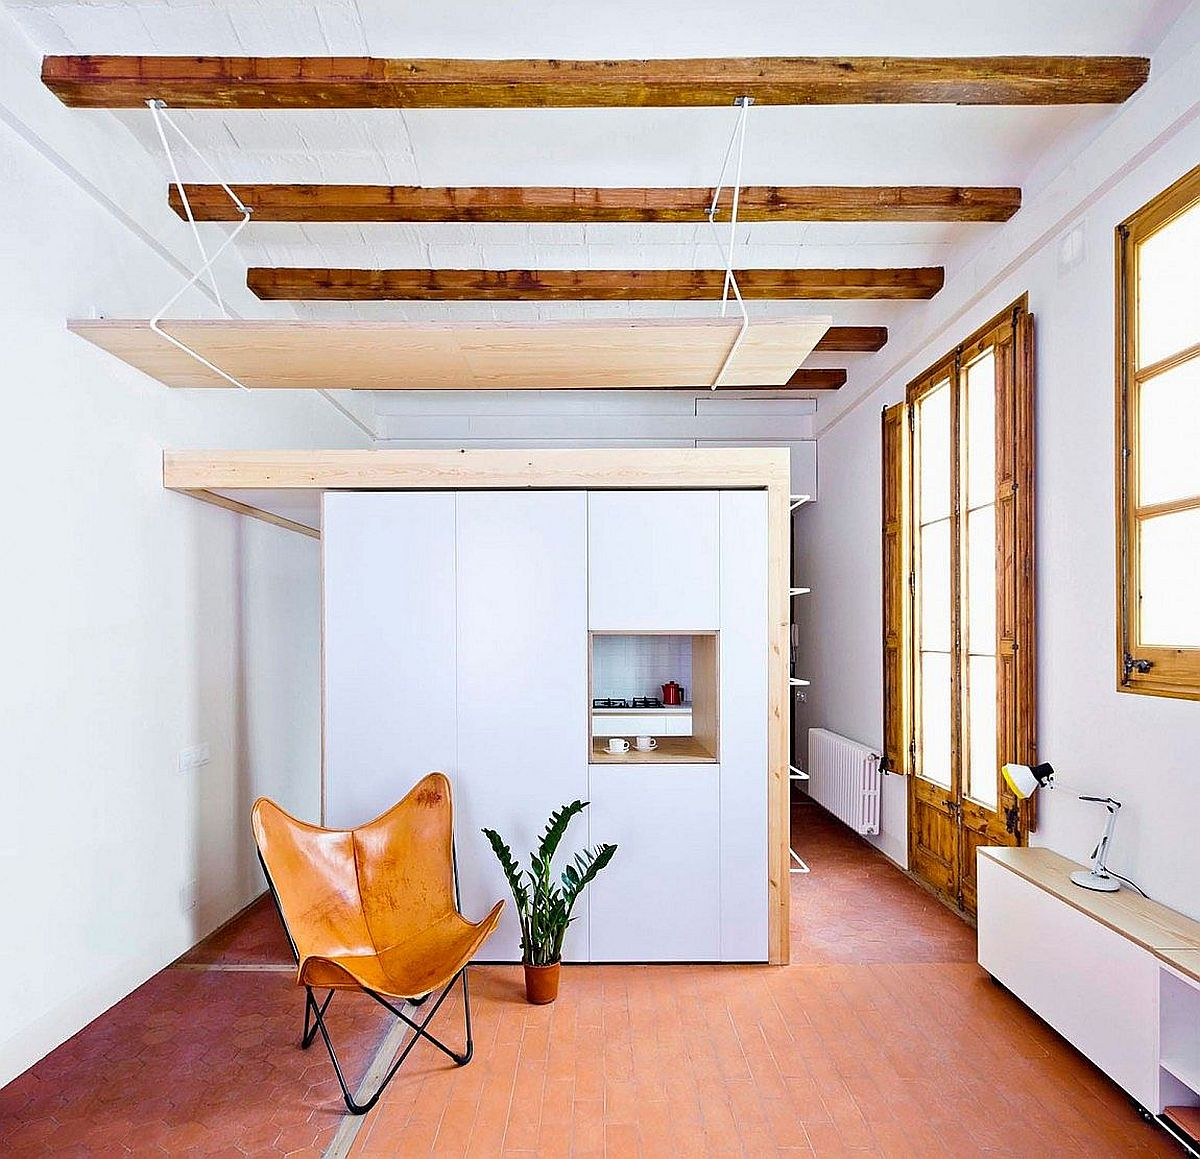 This-tiny-apartment-kitchen-has-a-mezzanine-level-of-its-own